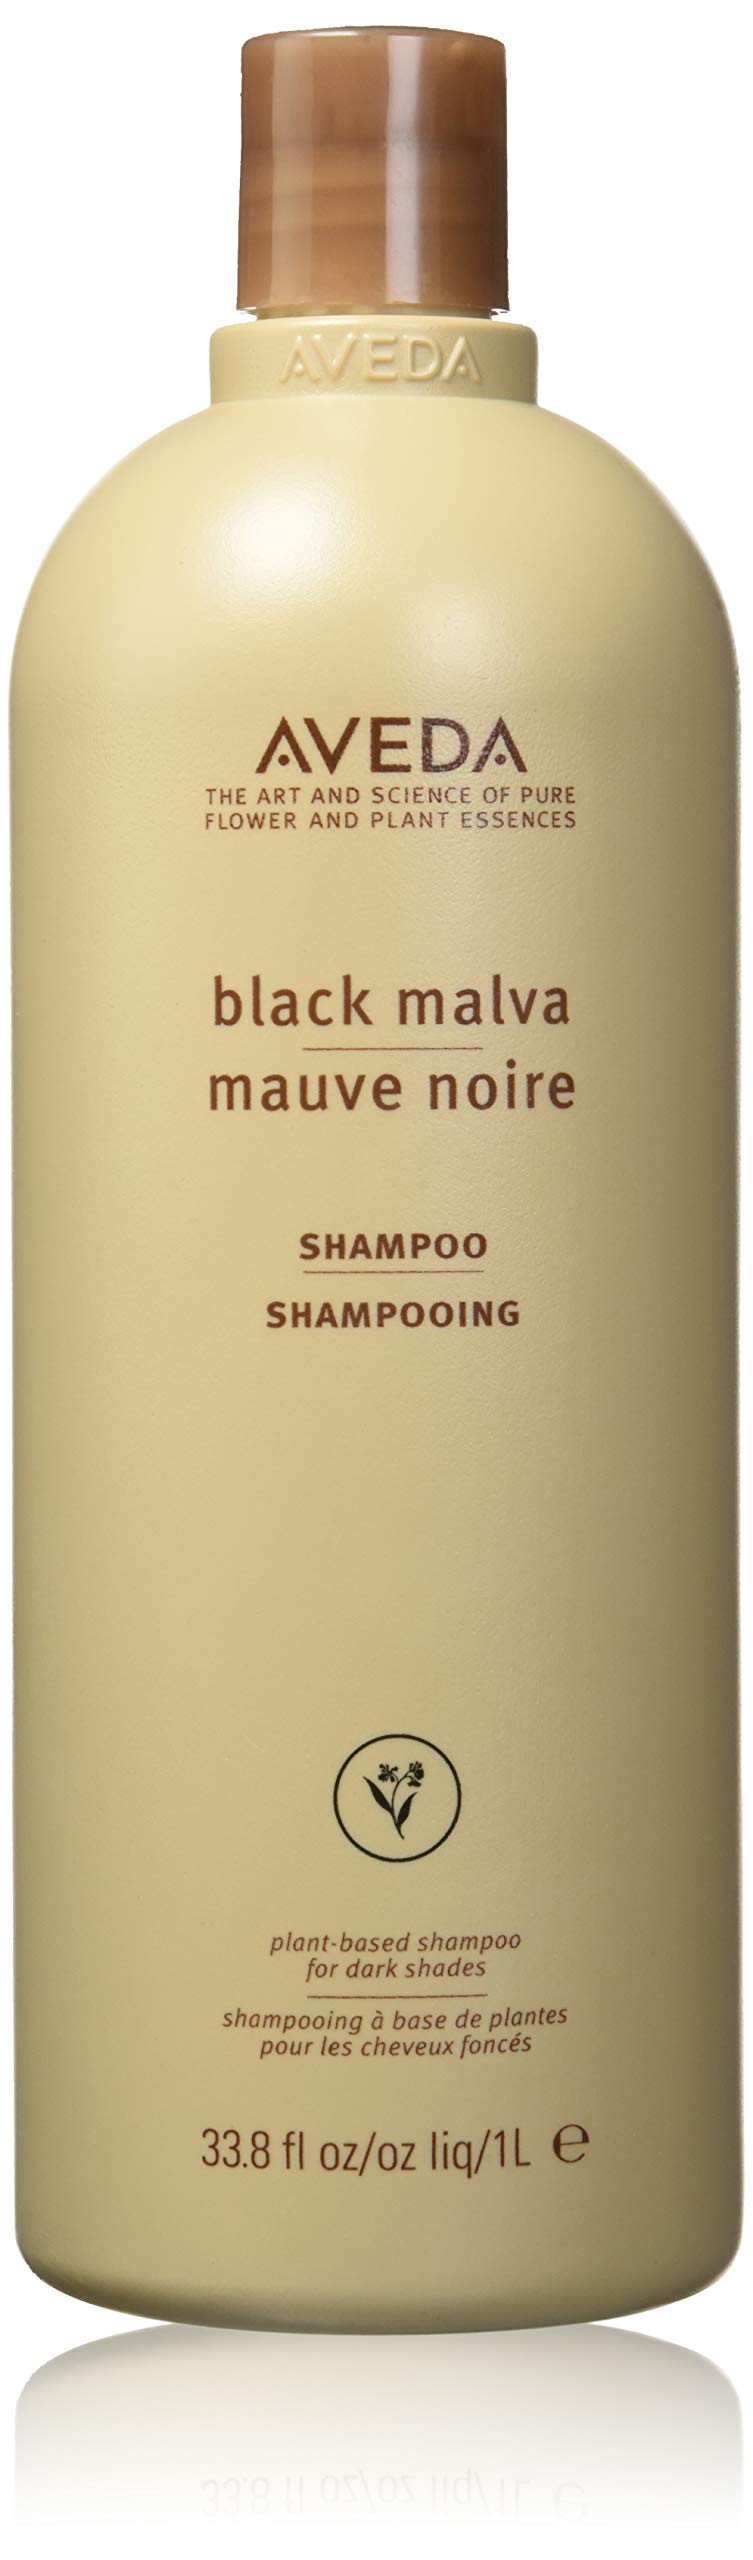 Aveda Black Malva Shampoo 33.8 oz by AVEDA